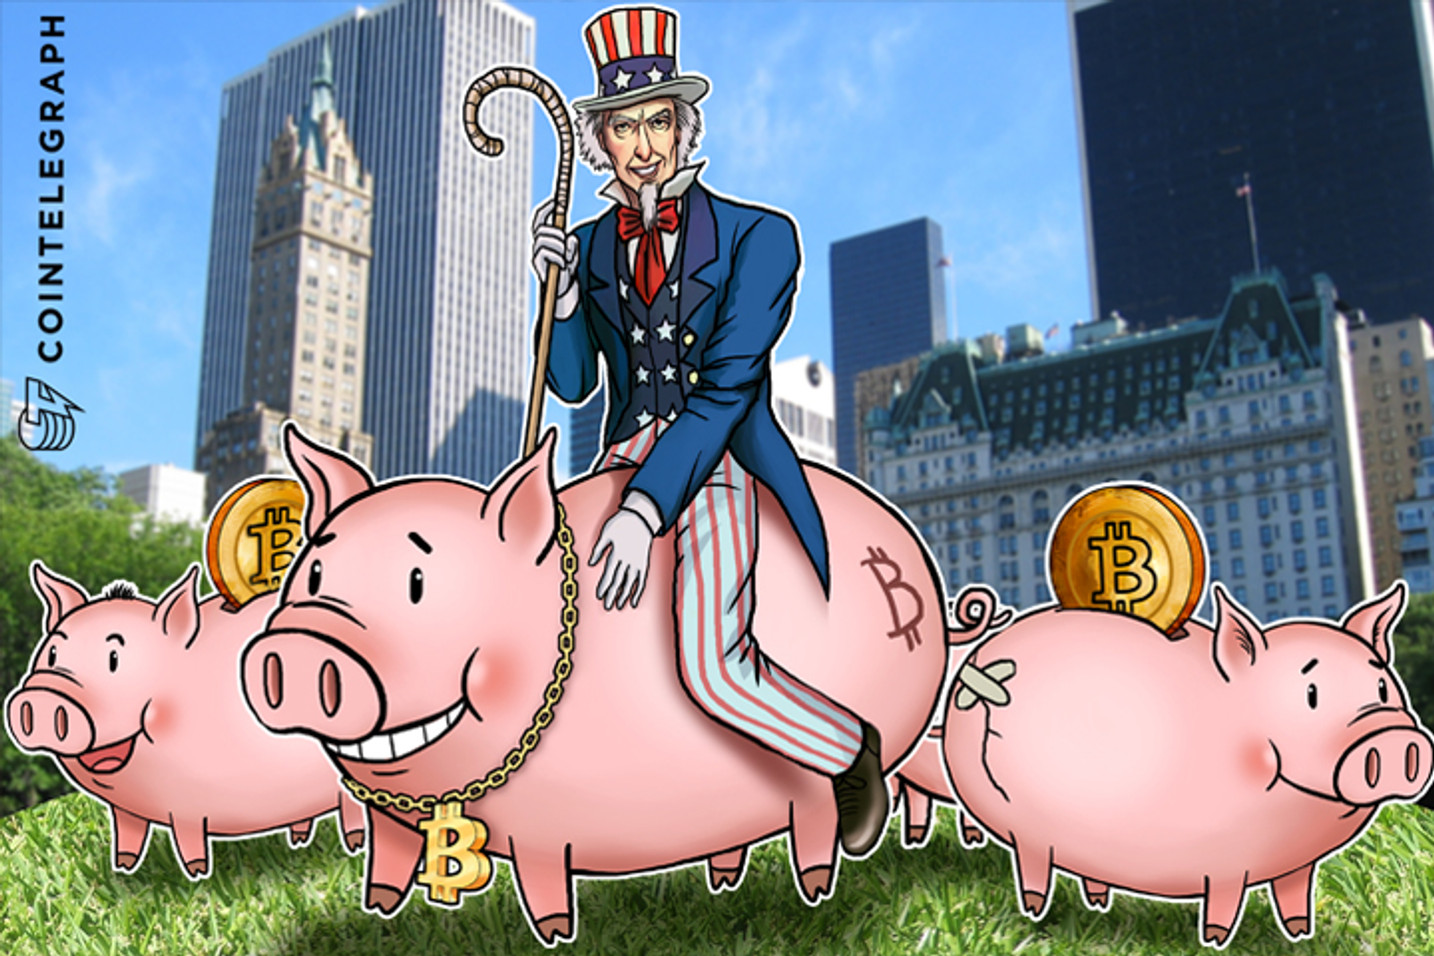 Theo Chino: NY Authorities Are Using Bitcoiners in New York as Guinea Pigs